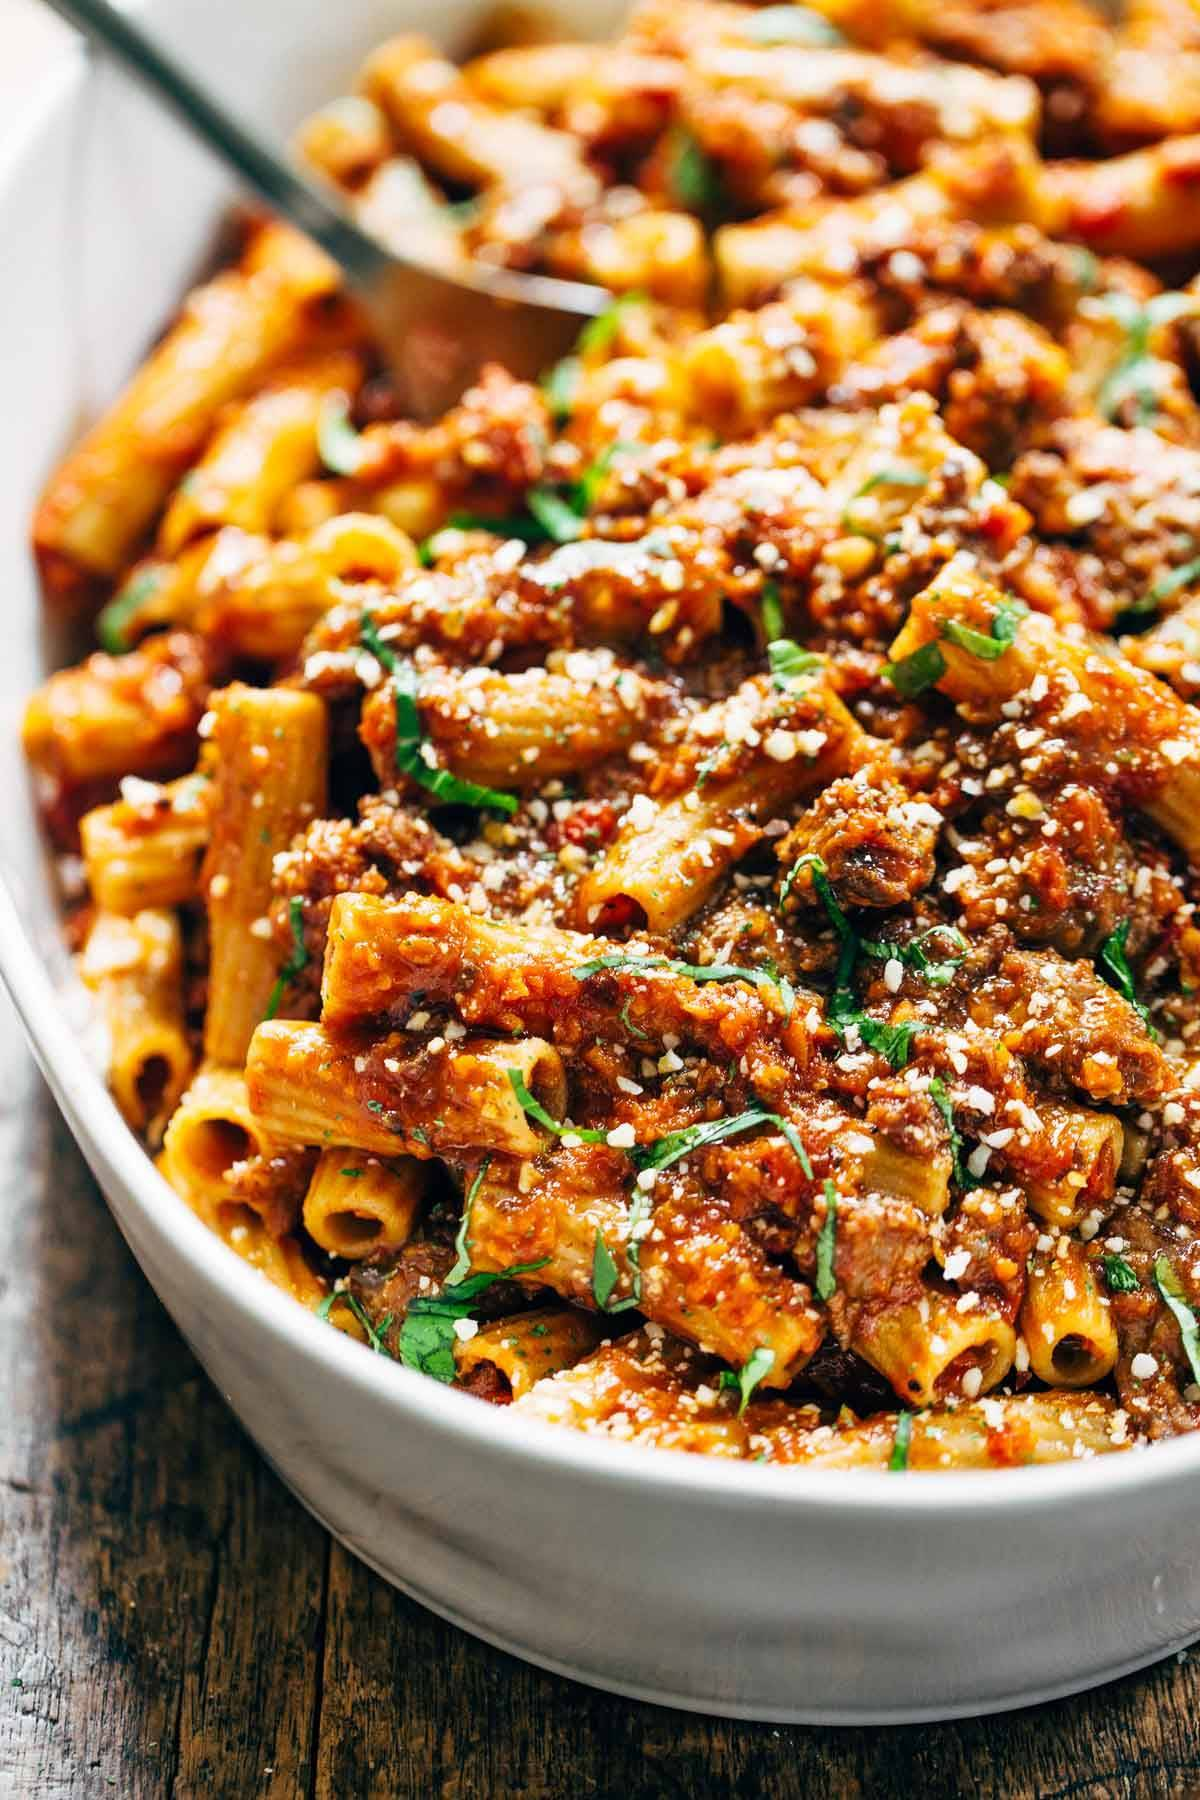 Spicy Sausage Rigatoni in a baking dish.